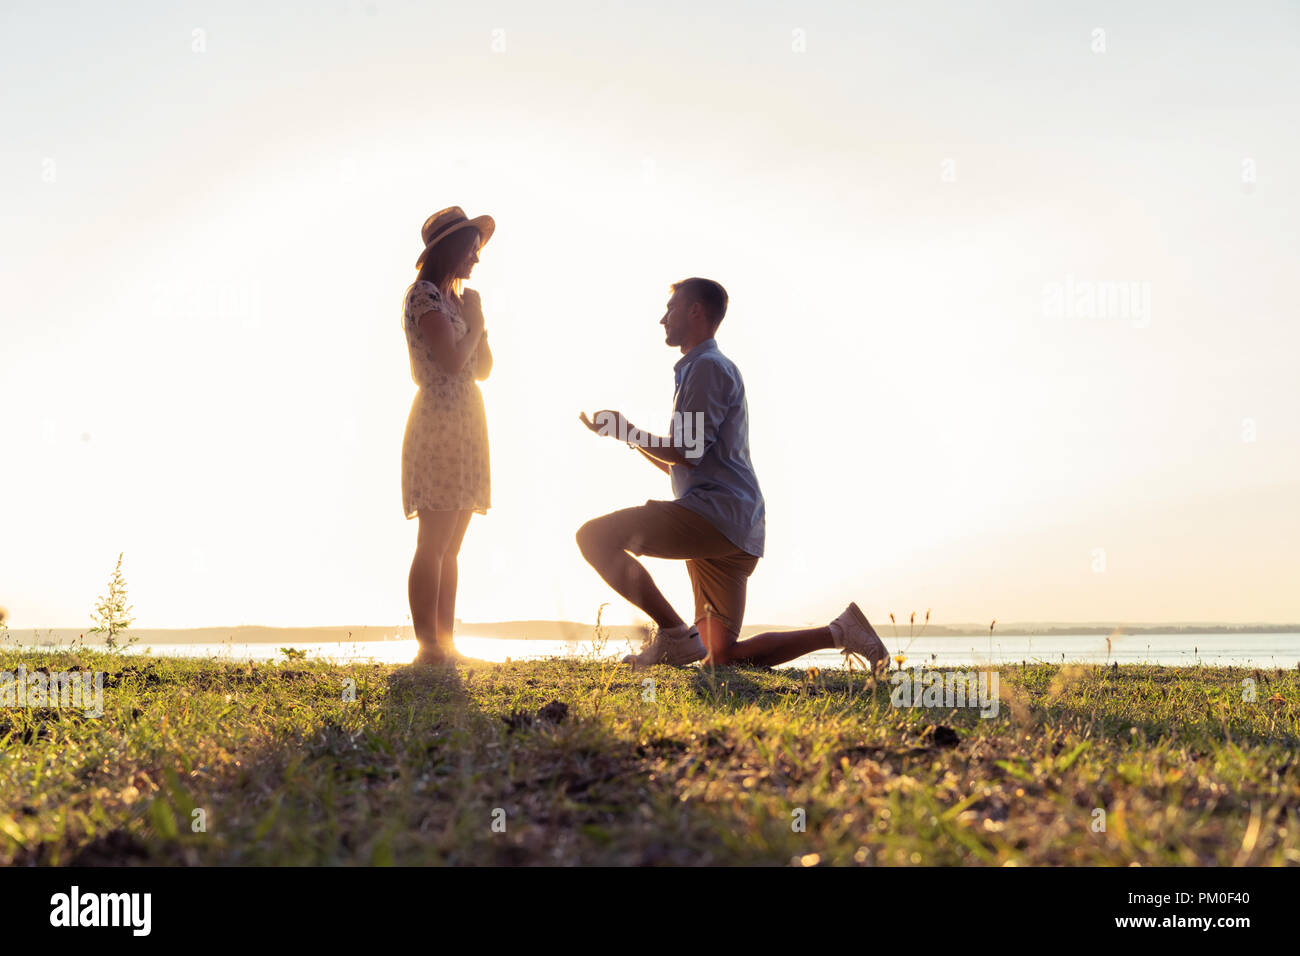 what knee do u propose on